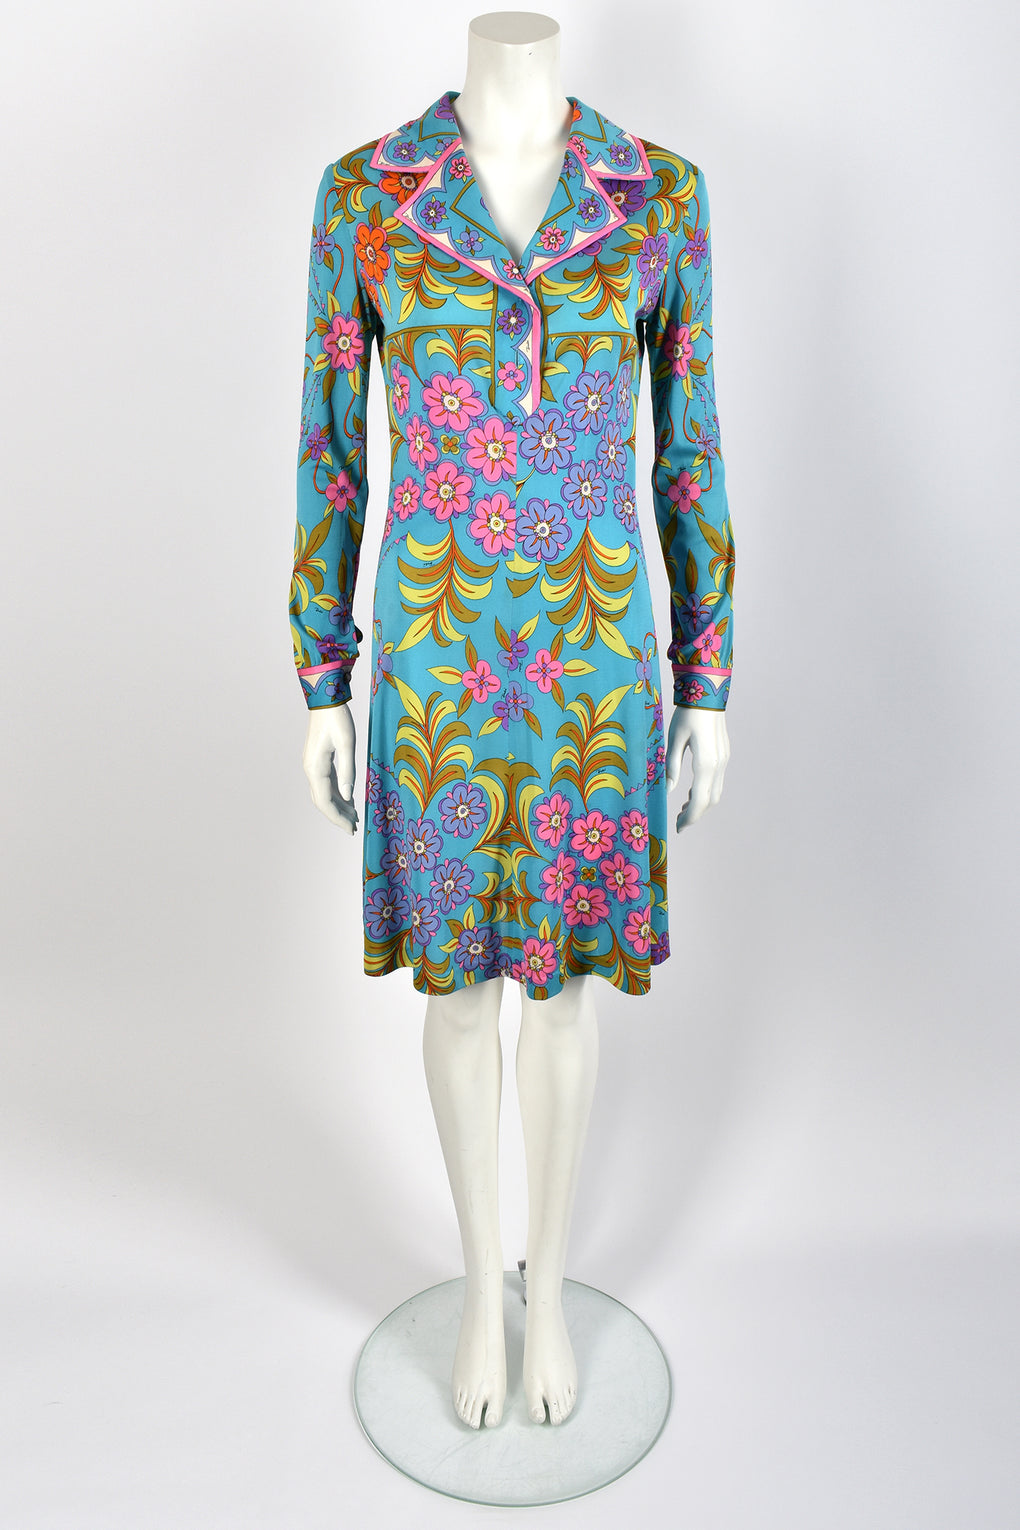 EMILIO PUCCI 60s silk jersey dress / M